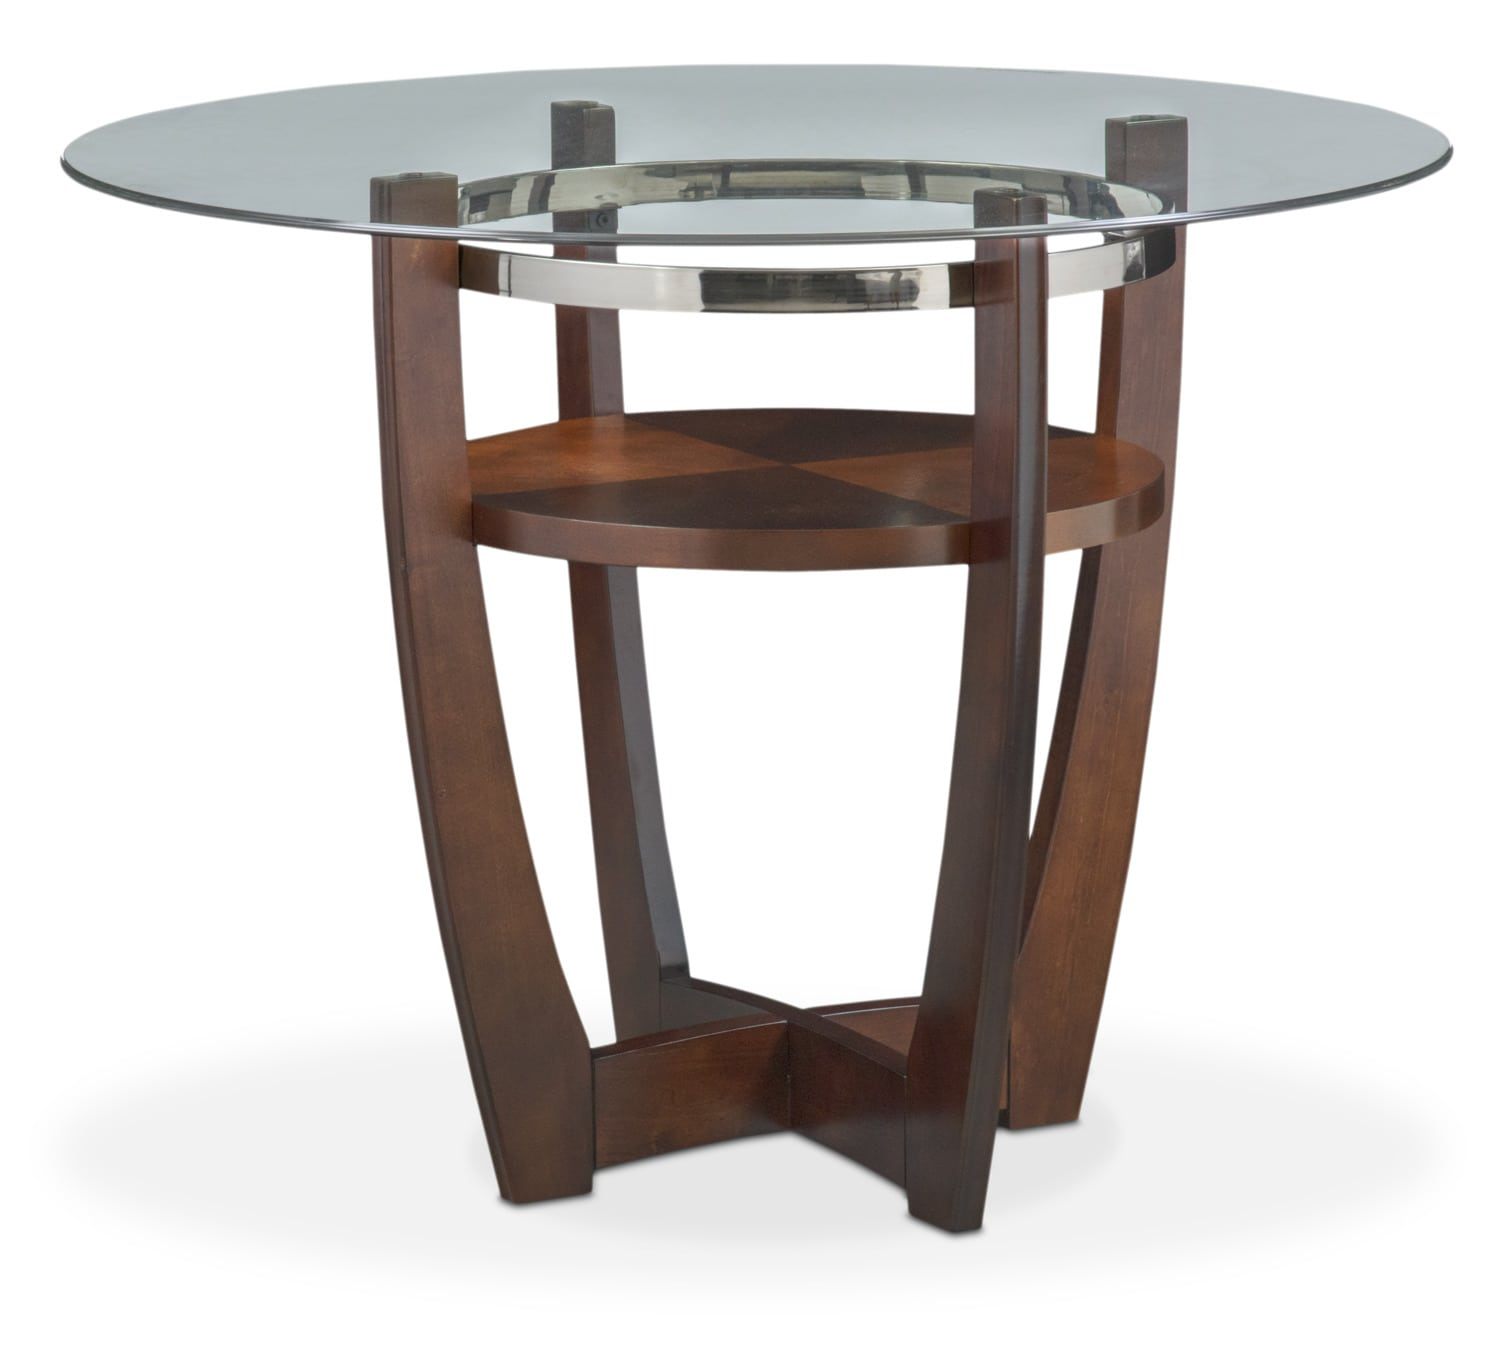 Dining Room Furniture - Alcove Counter-Height Table - Merlot